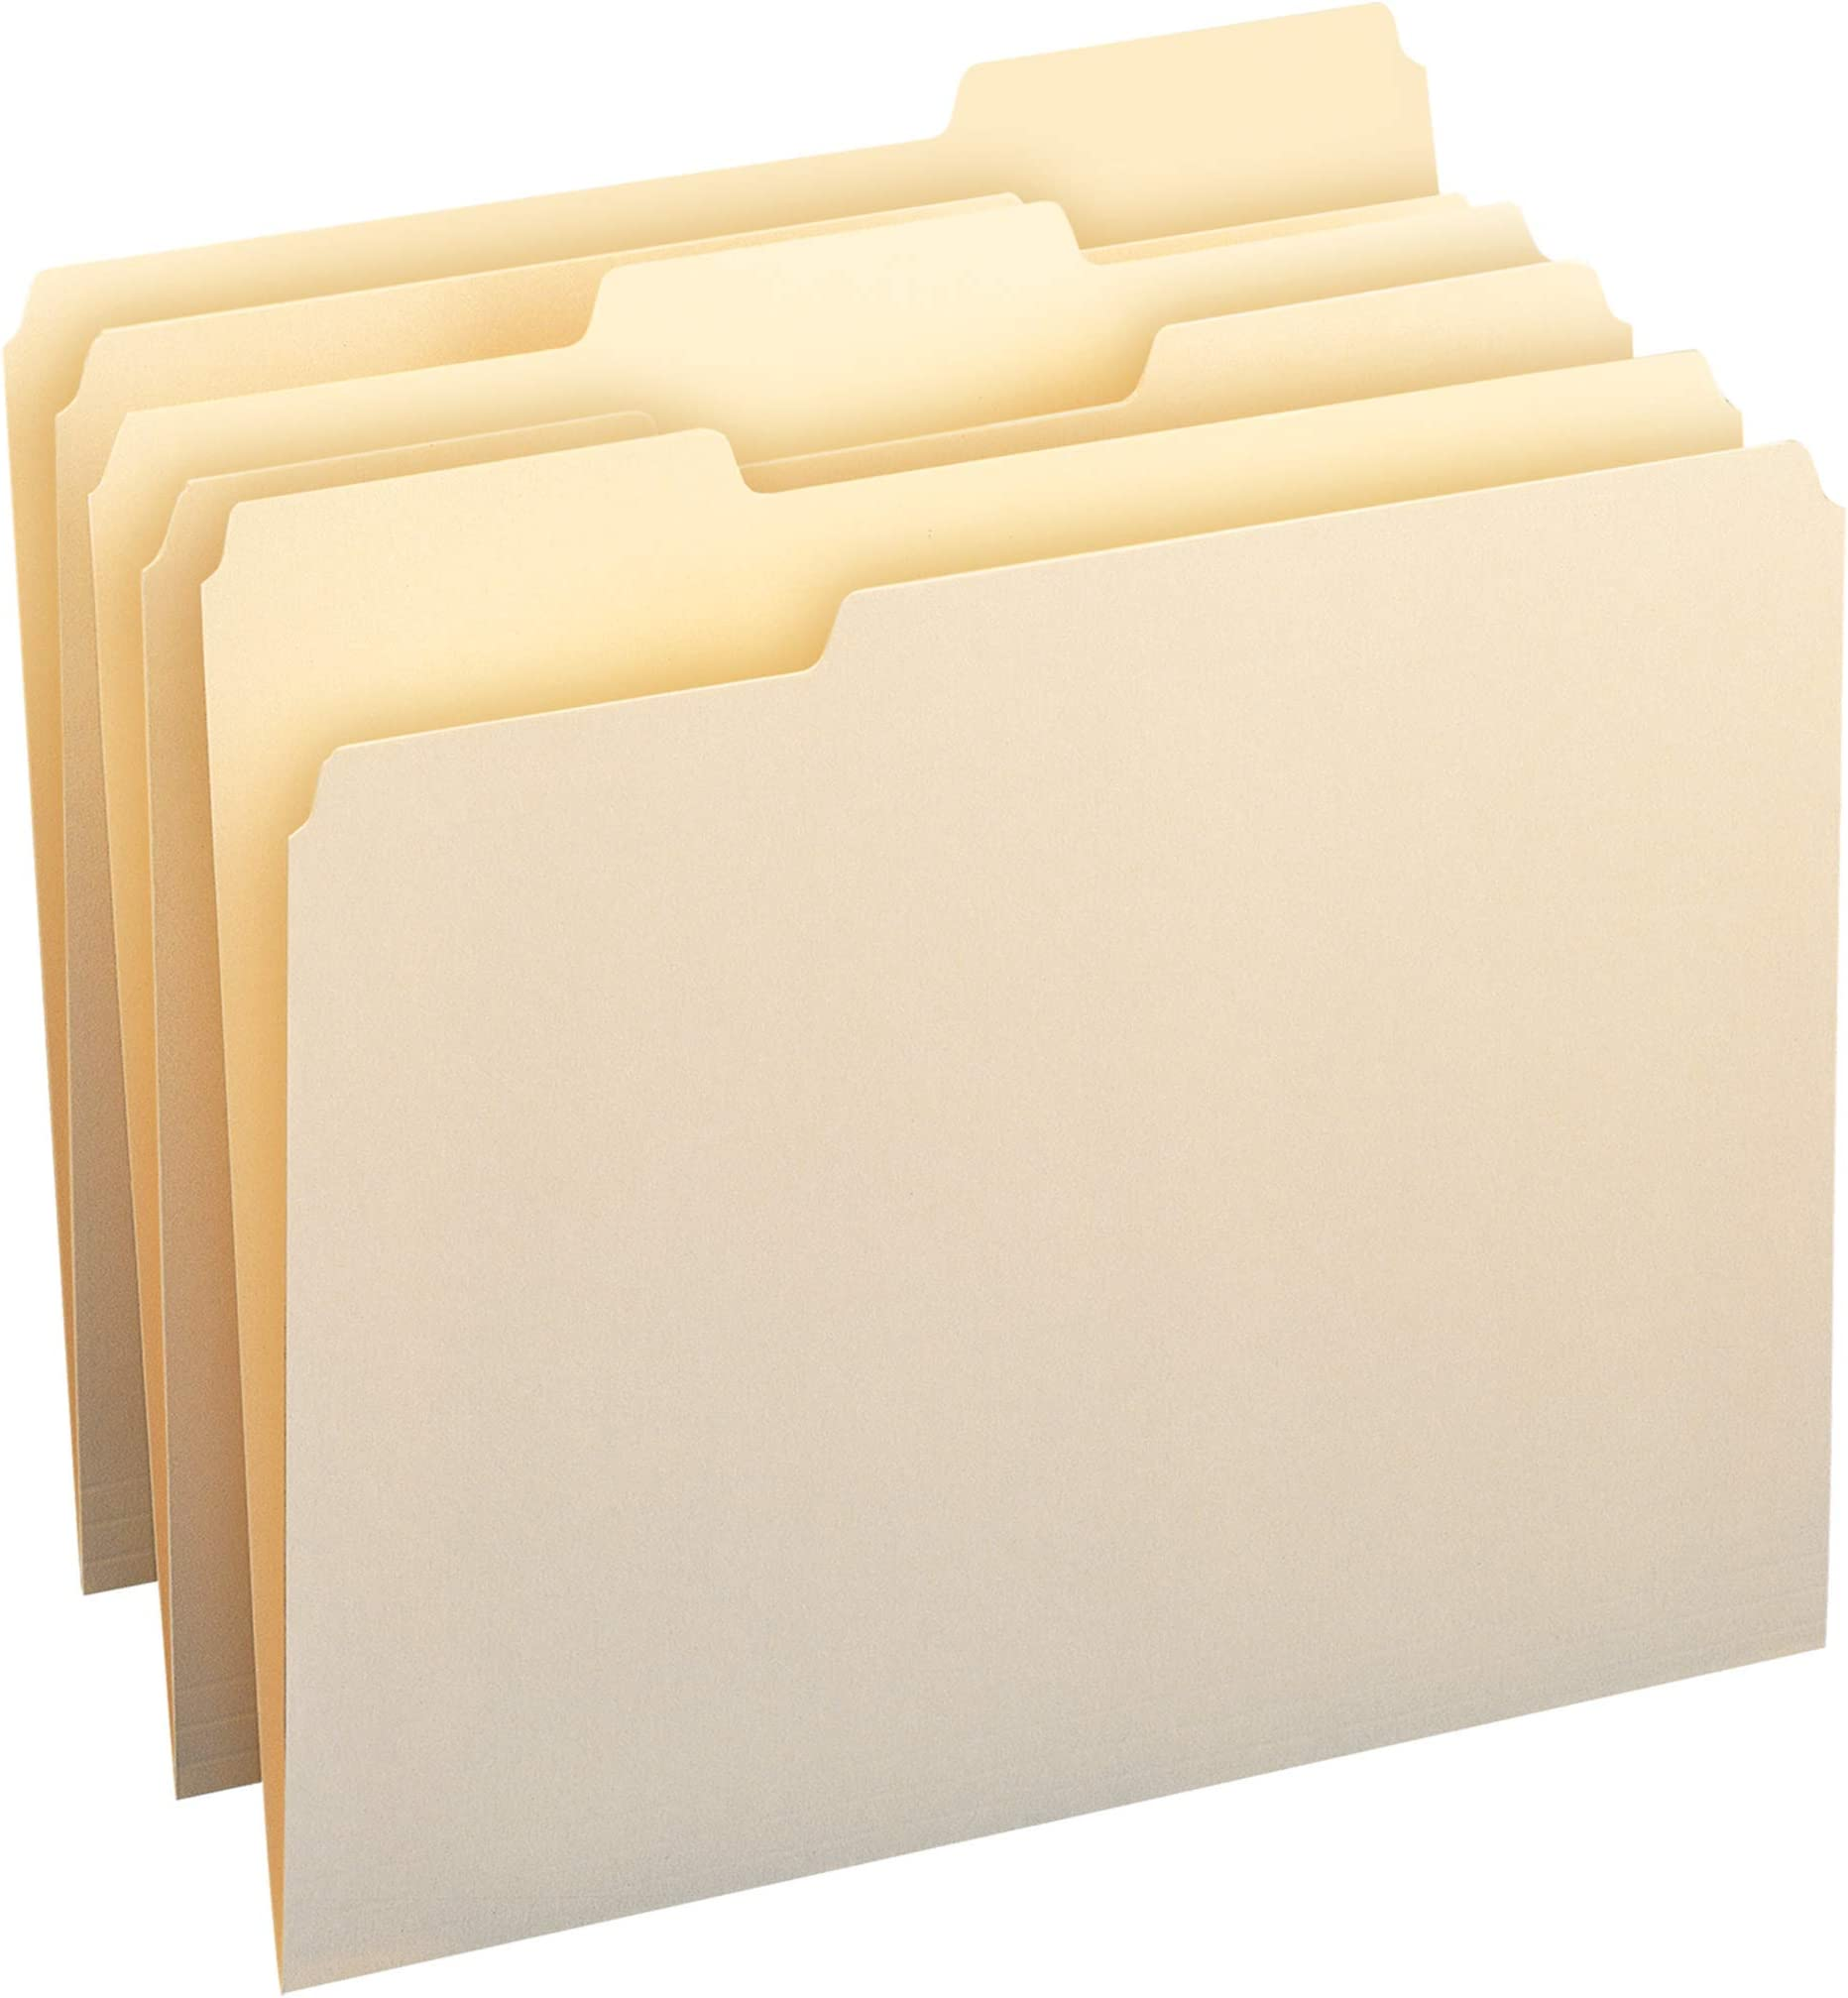 Amazon Basics 1/3-Cut Tab, Assorted Positions File Folders, Letter Size, Manila - Pack of 100